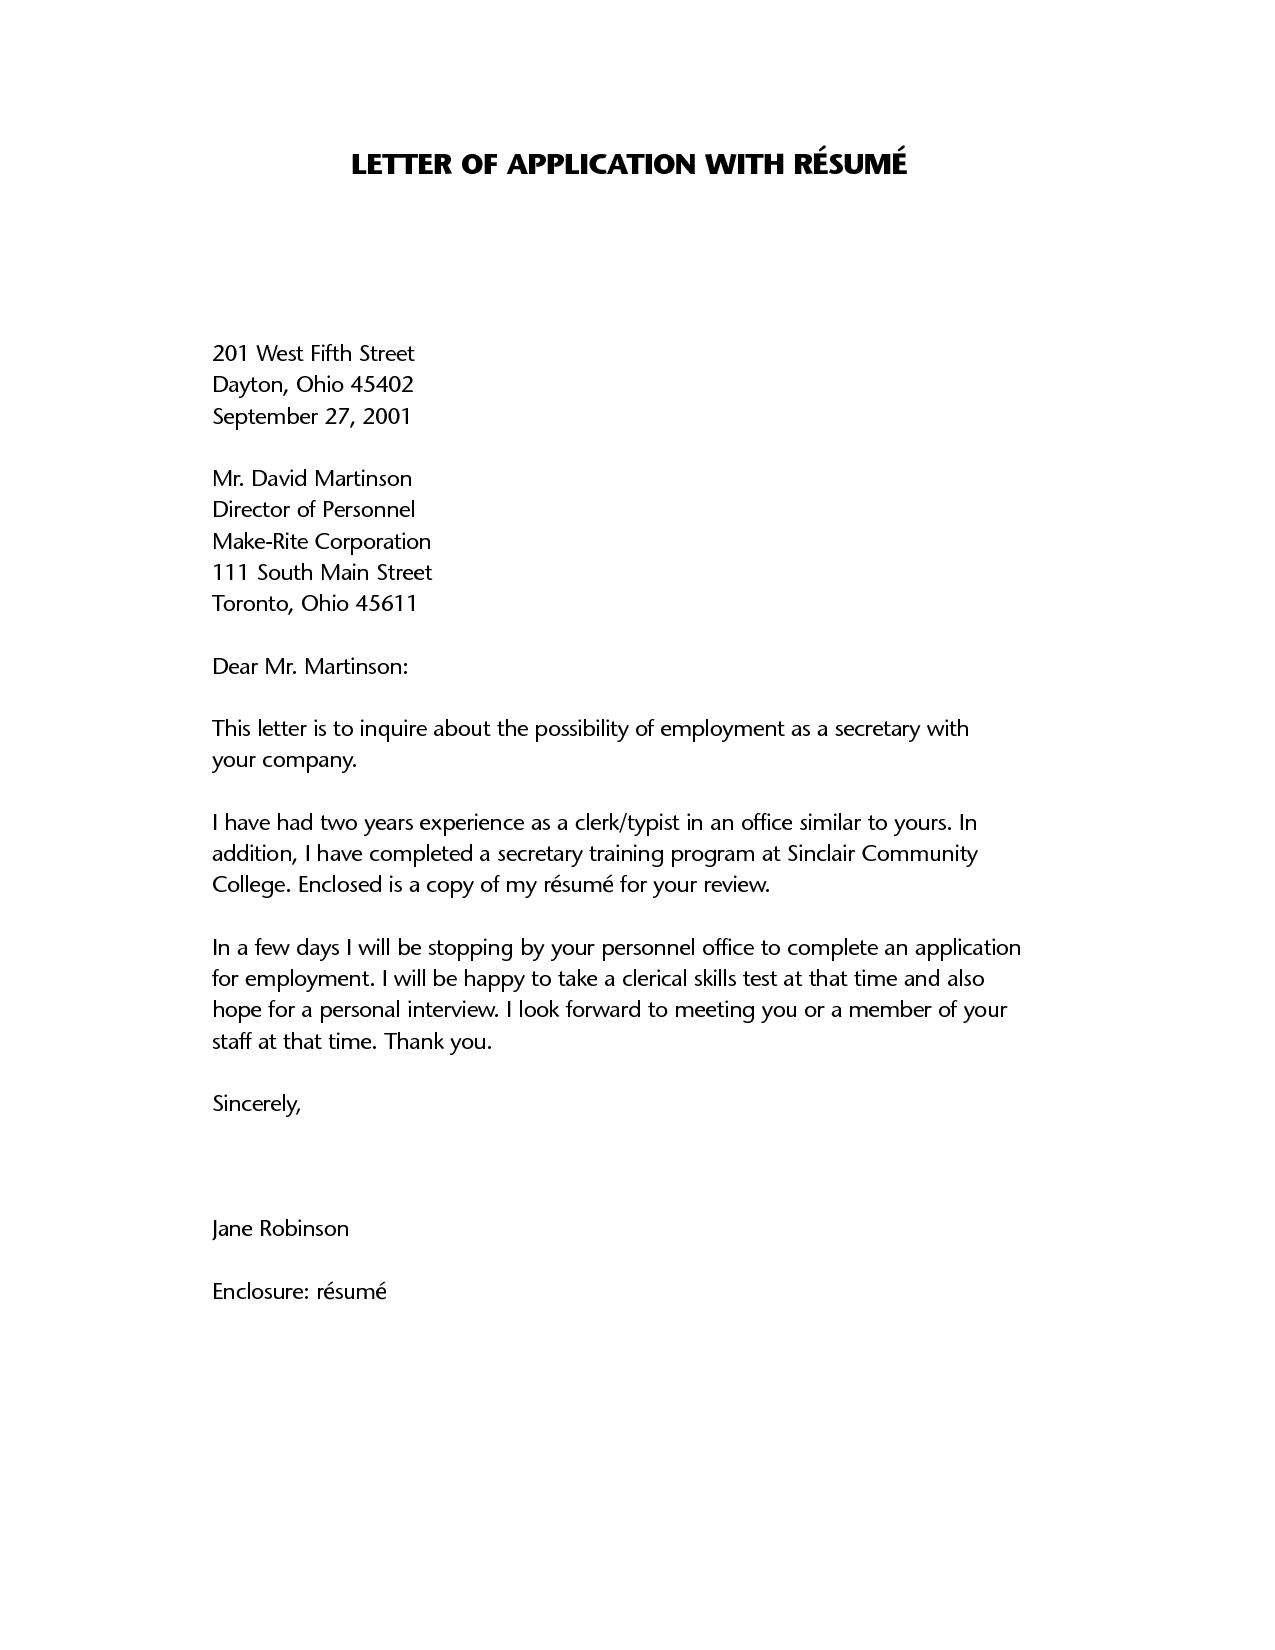 Covering Letter Format For Resume Resume Application Letter A Letter Of Application Is A